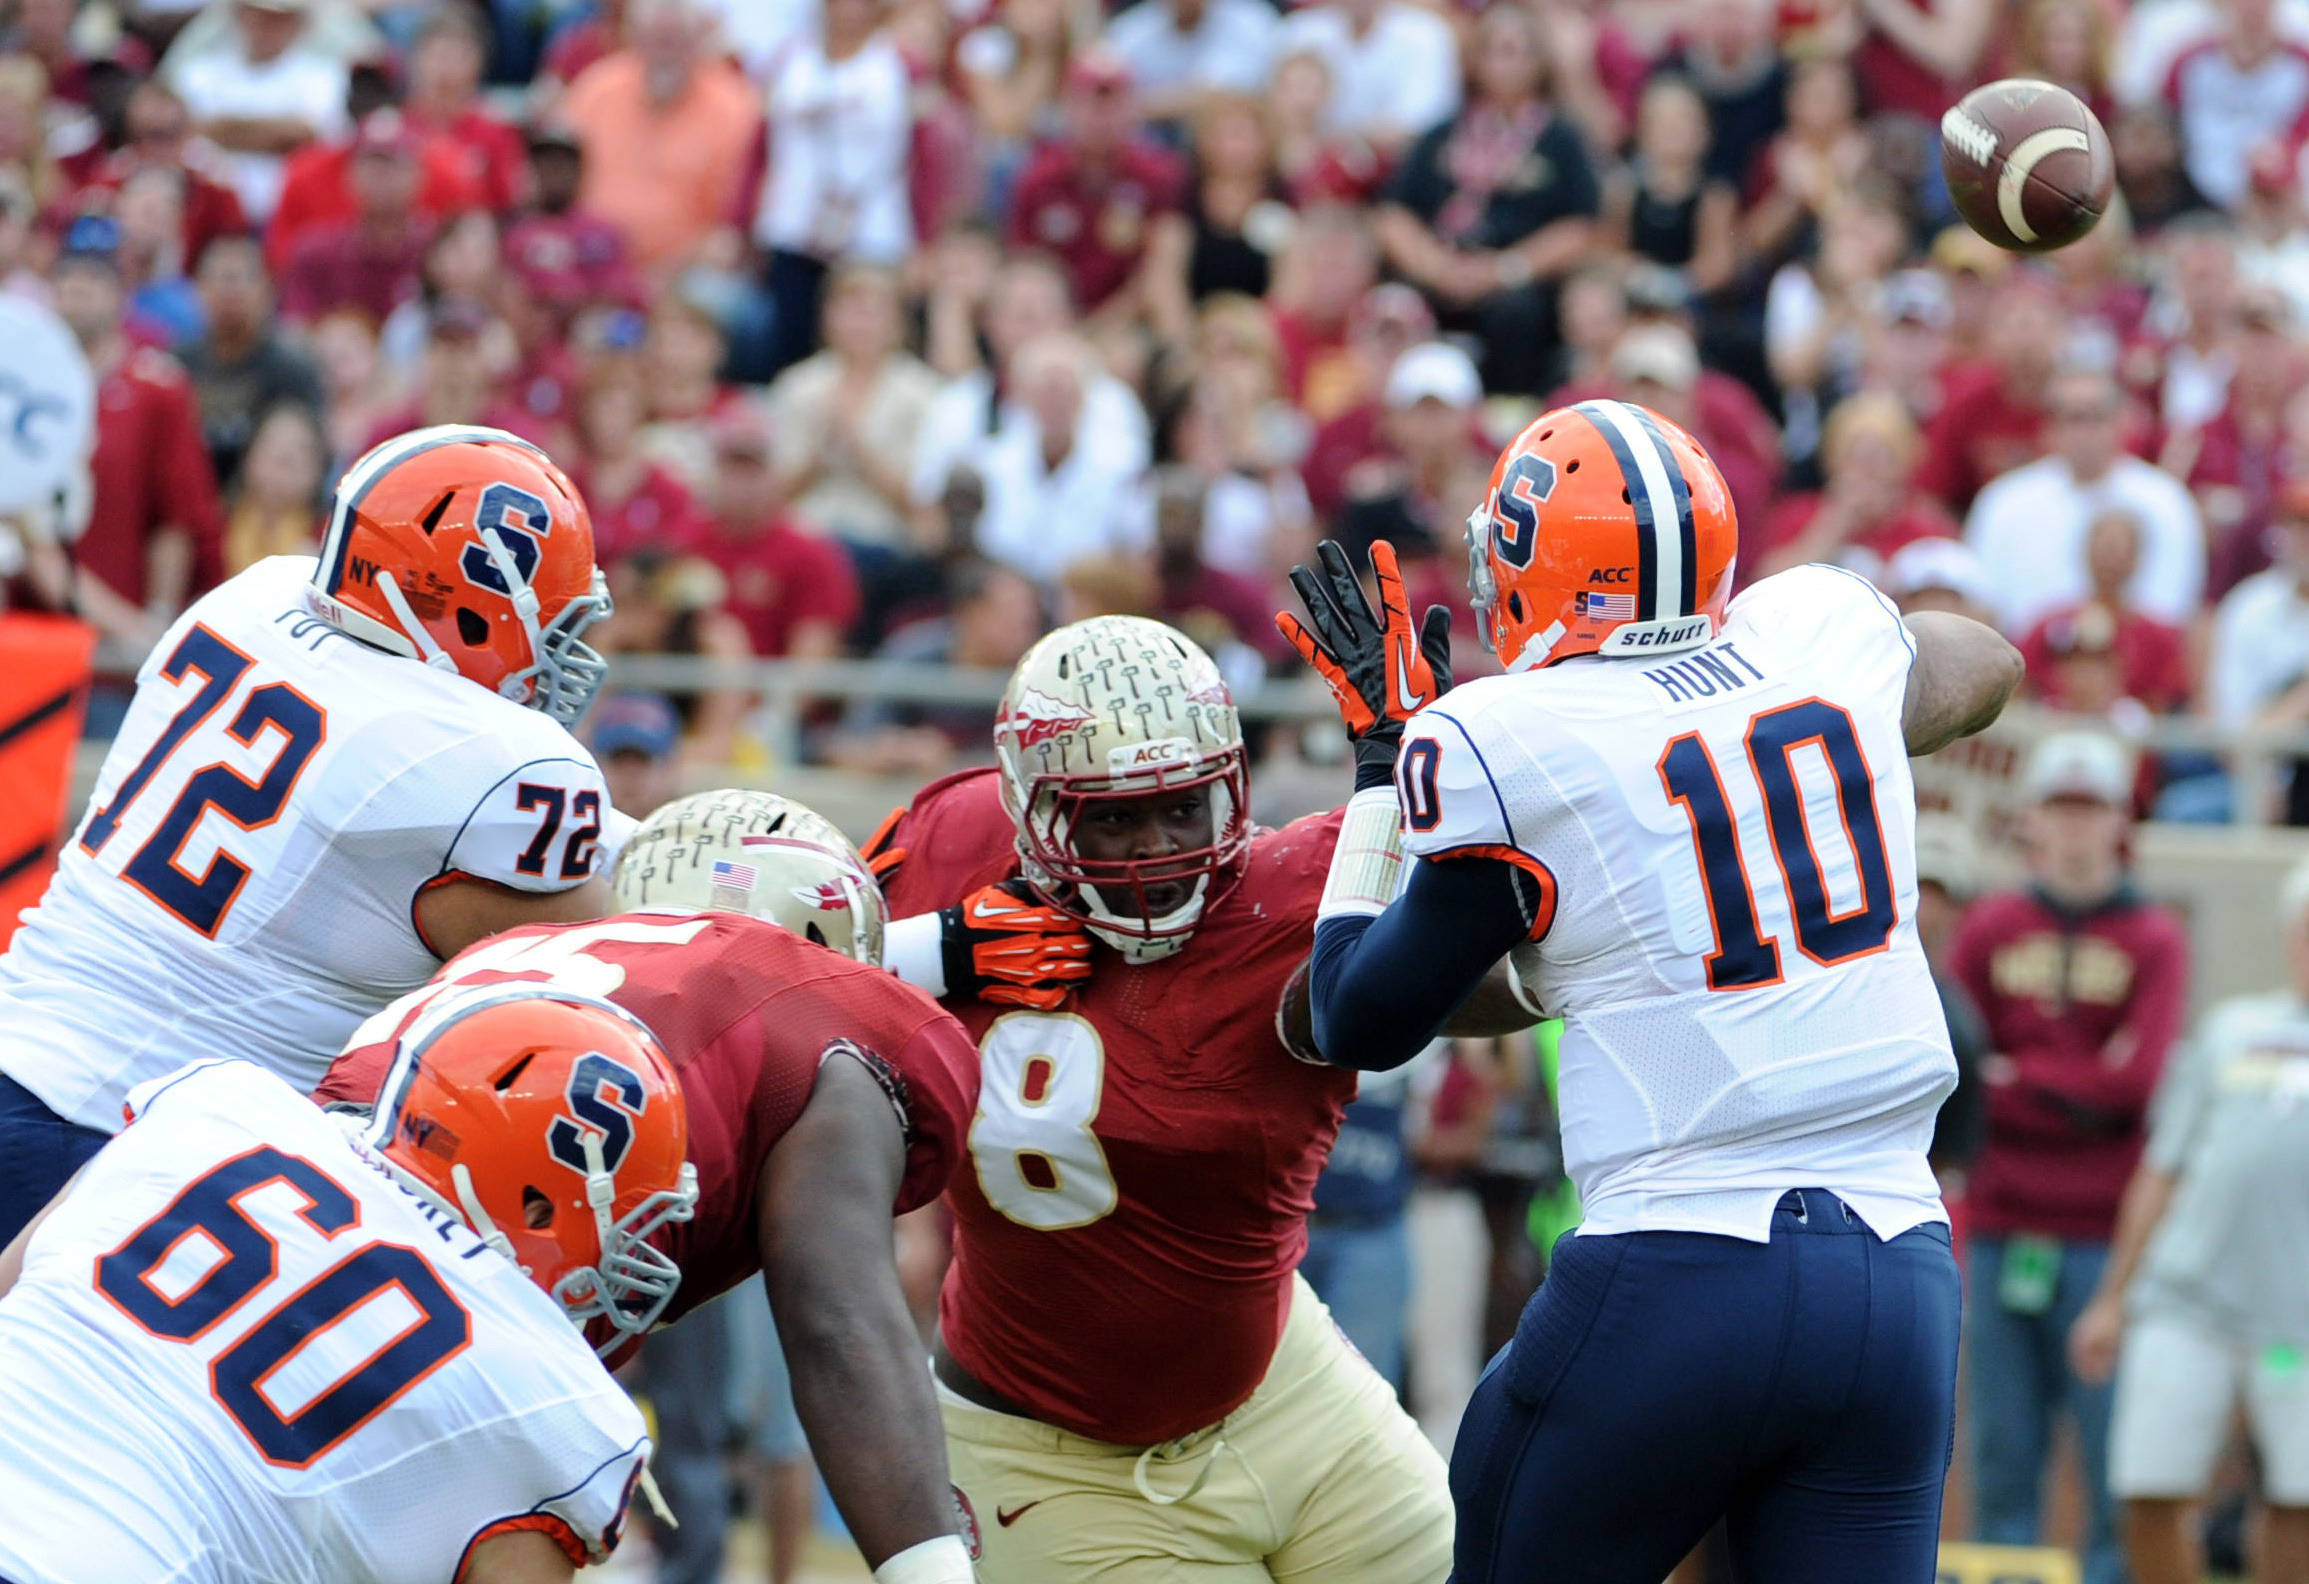 Terrel Hunt (10) throws the ball as he is pressured by Florida State Seminoles defensive tackle Timmy Jernigan (8). Mandatory Credit: Melina Vastola-USA TODAY Sports